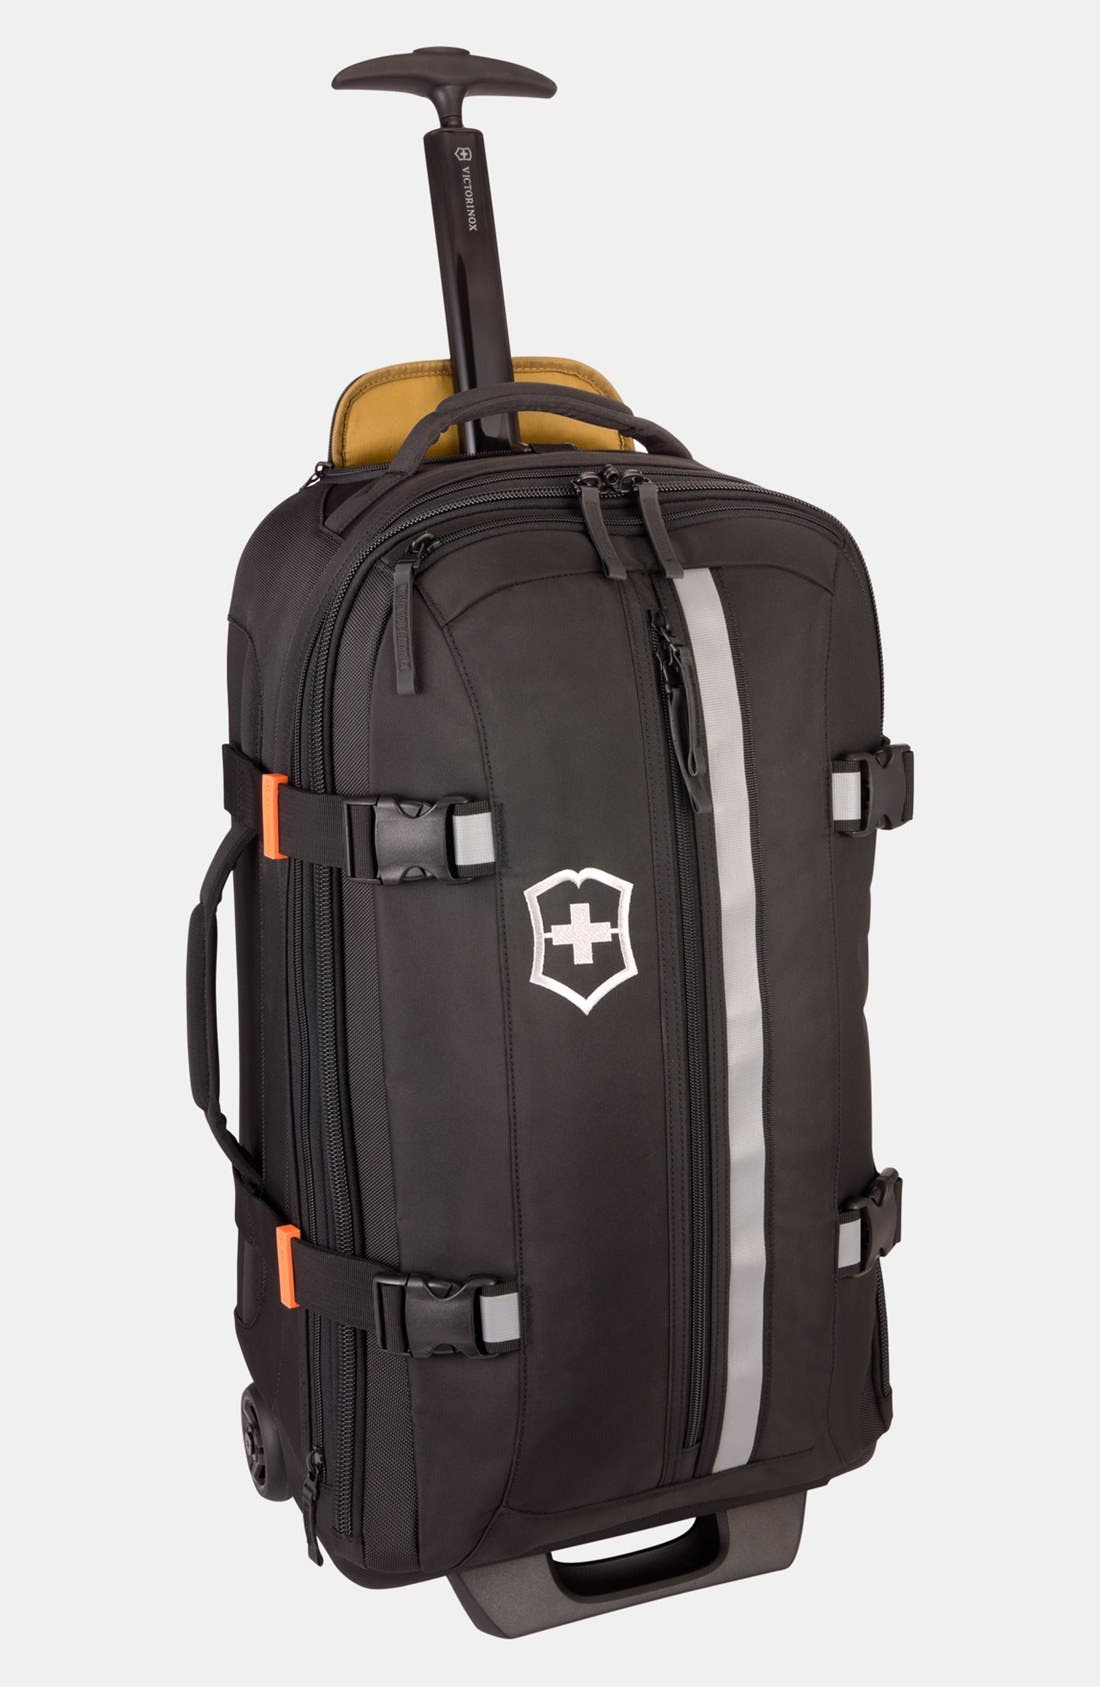 Main Image - Victorinox Swiss Army® Rolling Backpack (25 Inch)